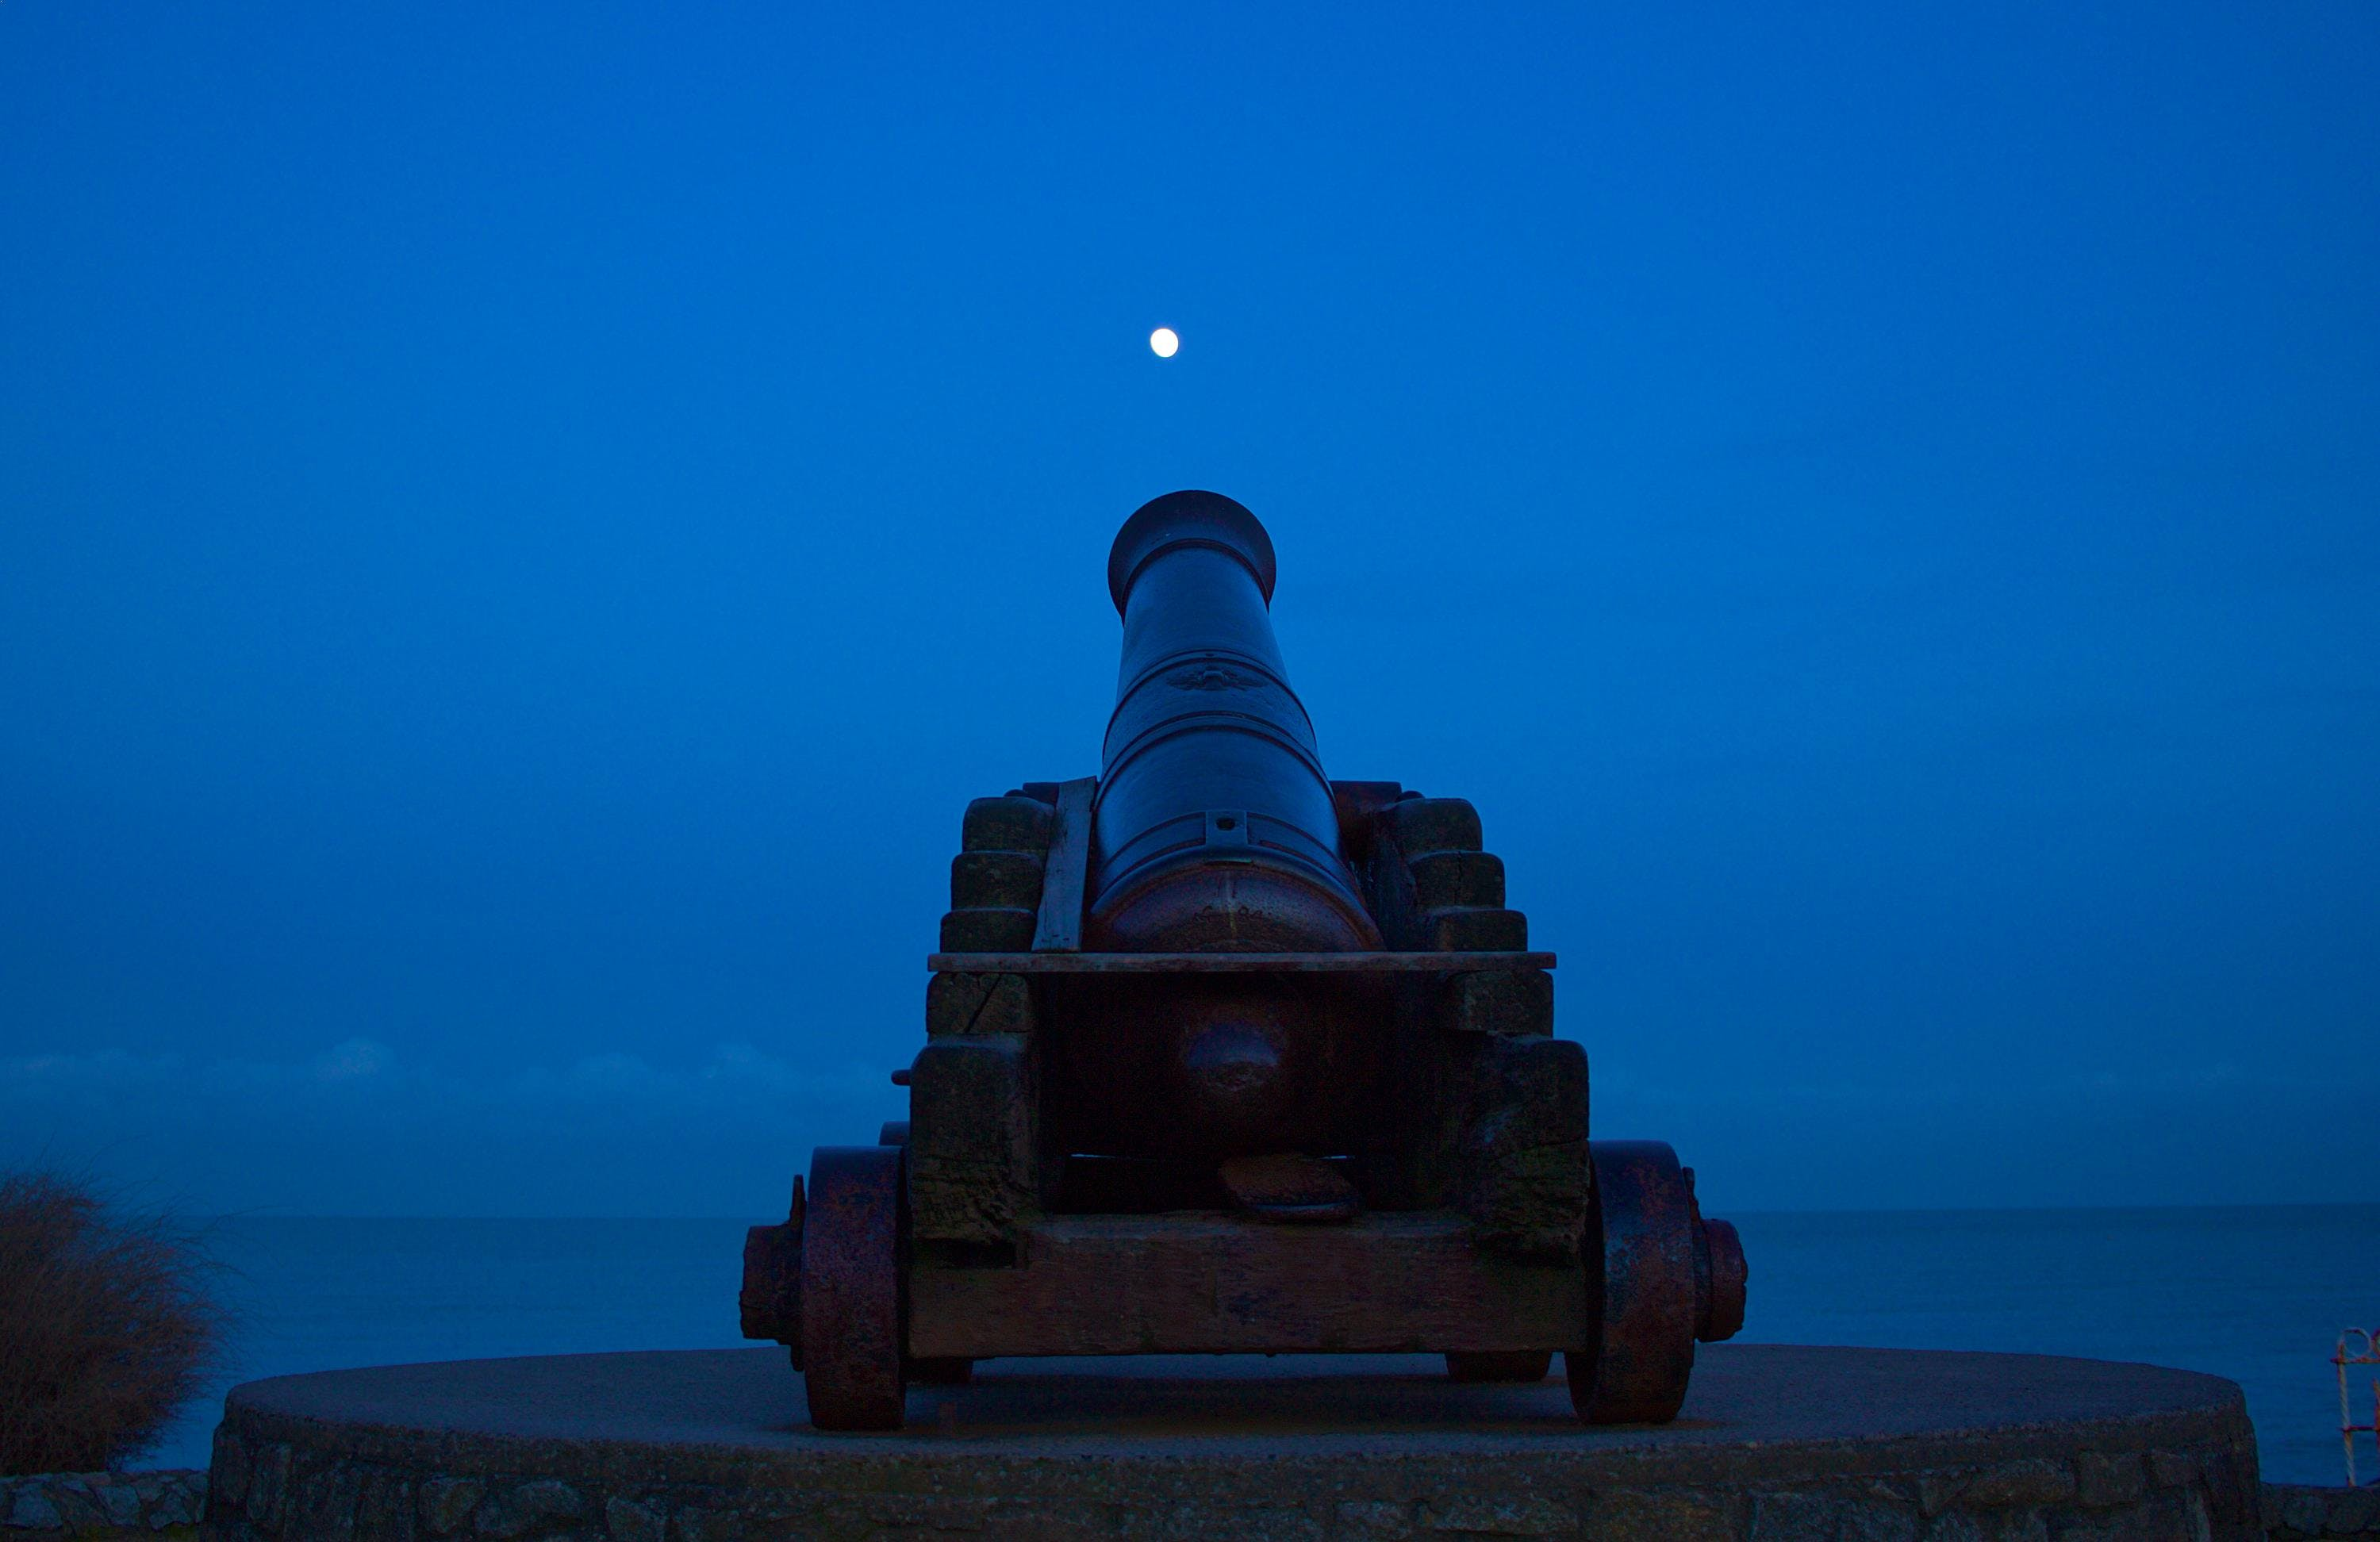 Free stock photo of night, cannon, moon, shoot